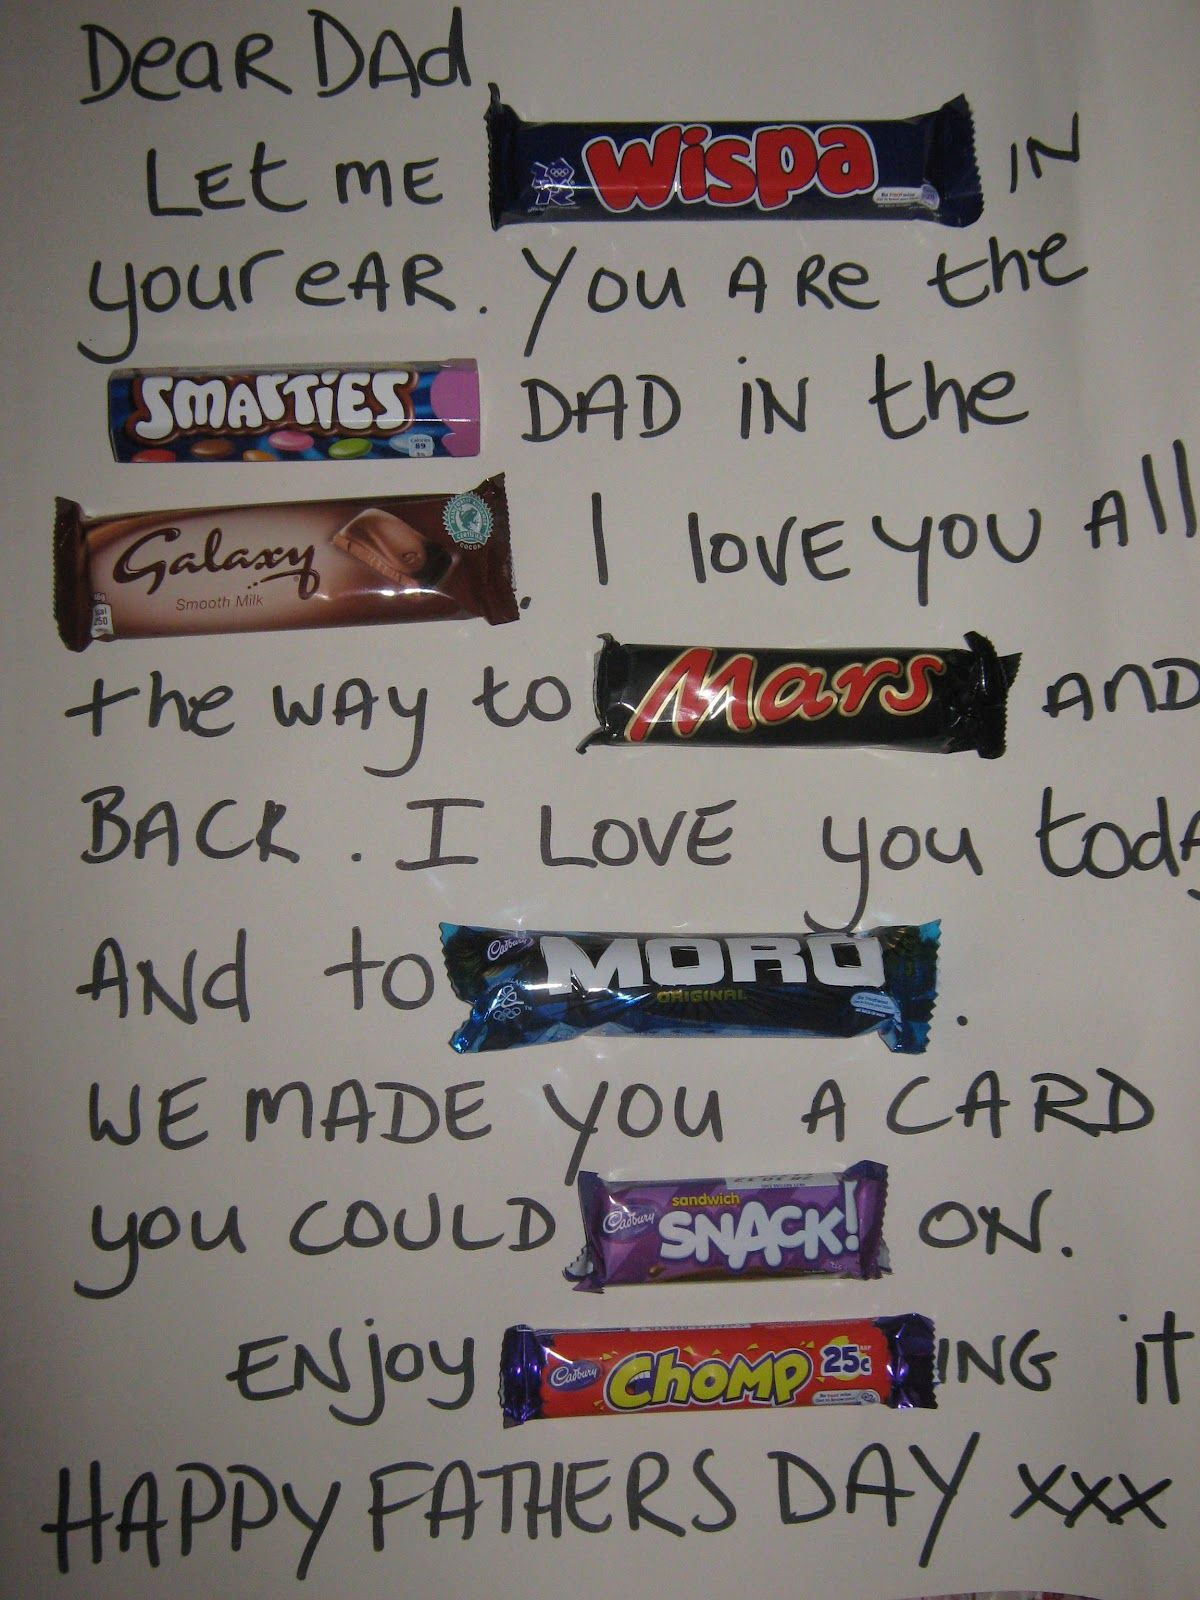 Easy peasy fathers day card with lots of chocolate abbyus pin